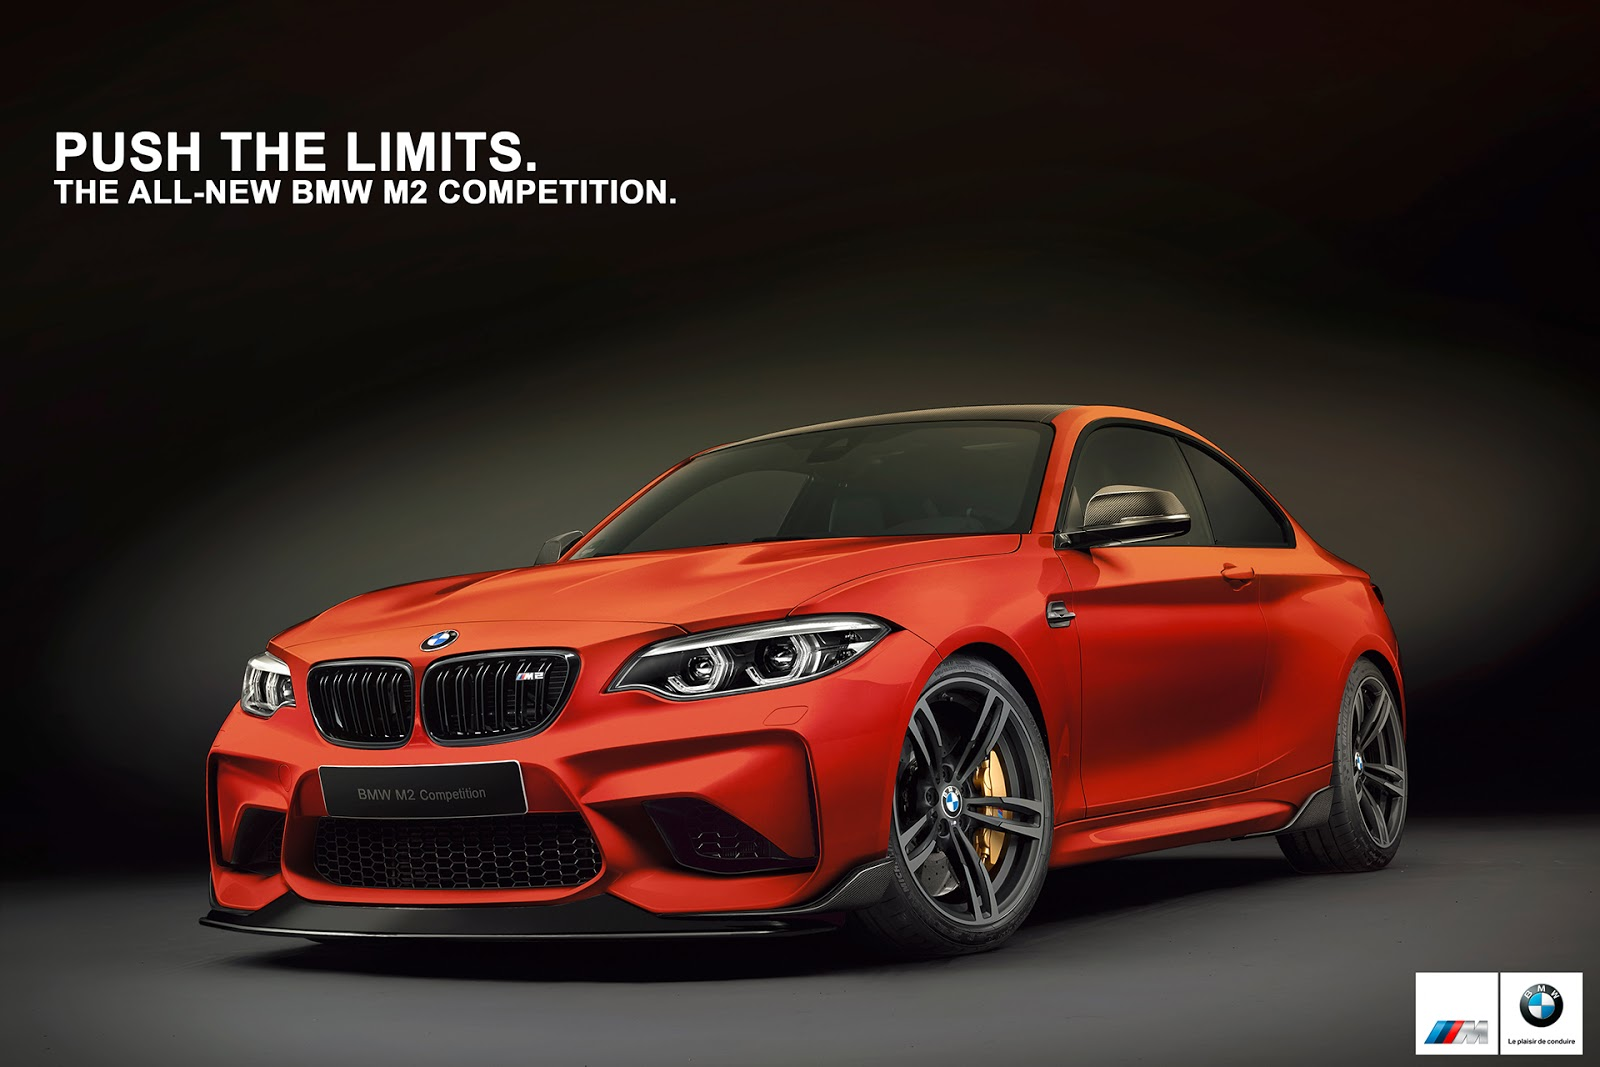 2 Person Car >> BMW M2 Competition Comes To Life With Realistic Renderings | Carscoops